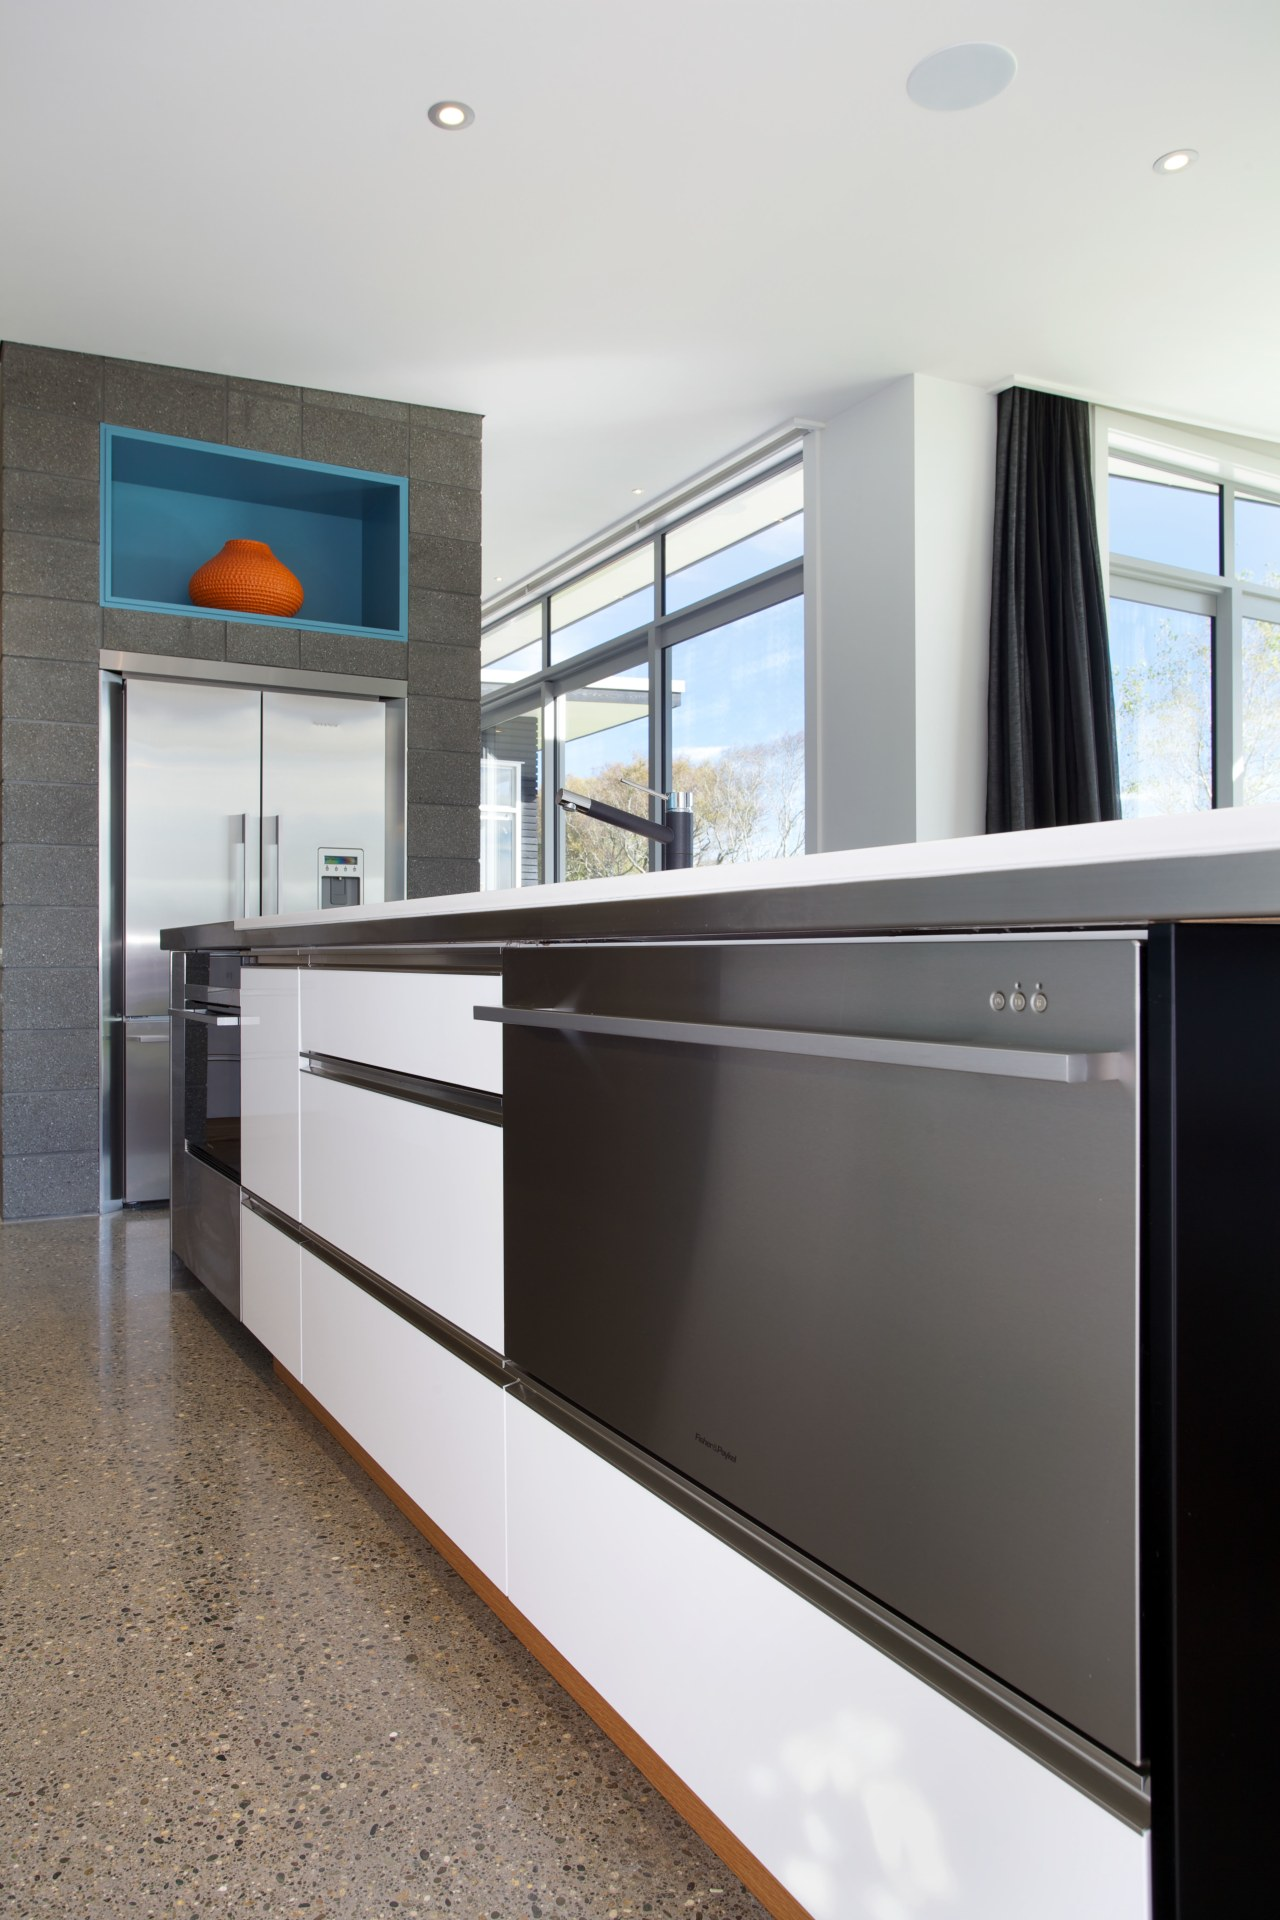 Modern kitchen with Fisher & Paykel DishDrawer cabinetry, countertop, home appliance, interior design, kitchen, white, gray